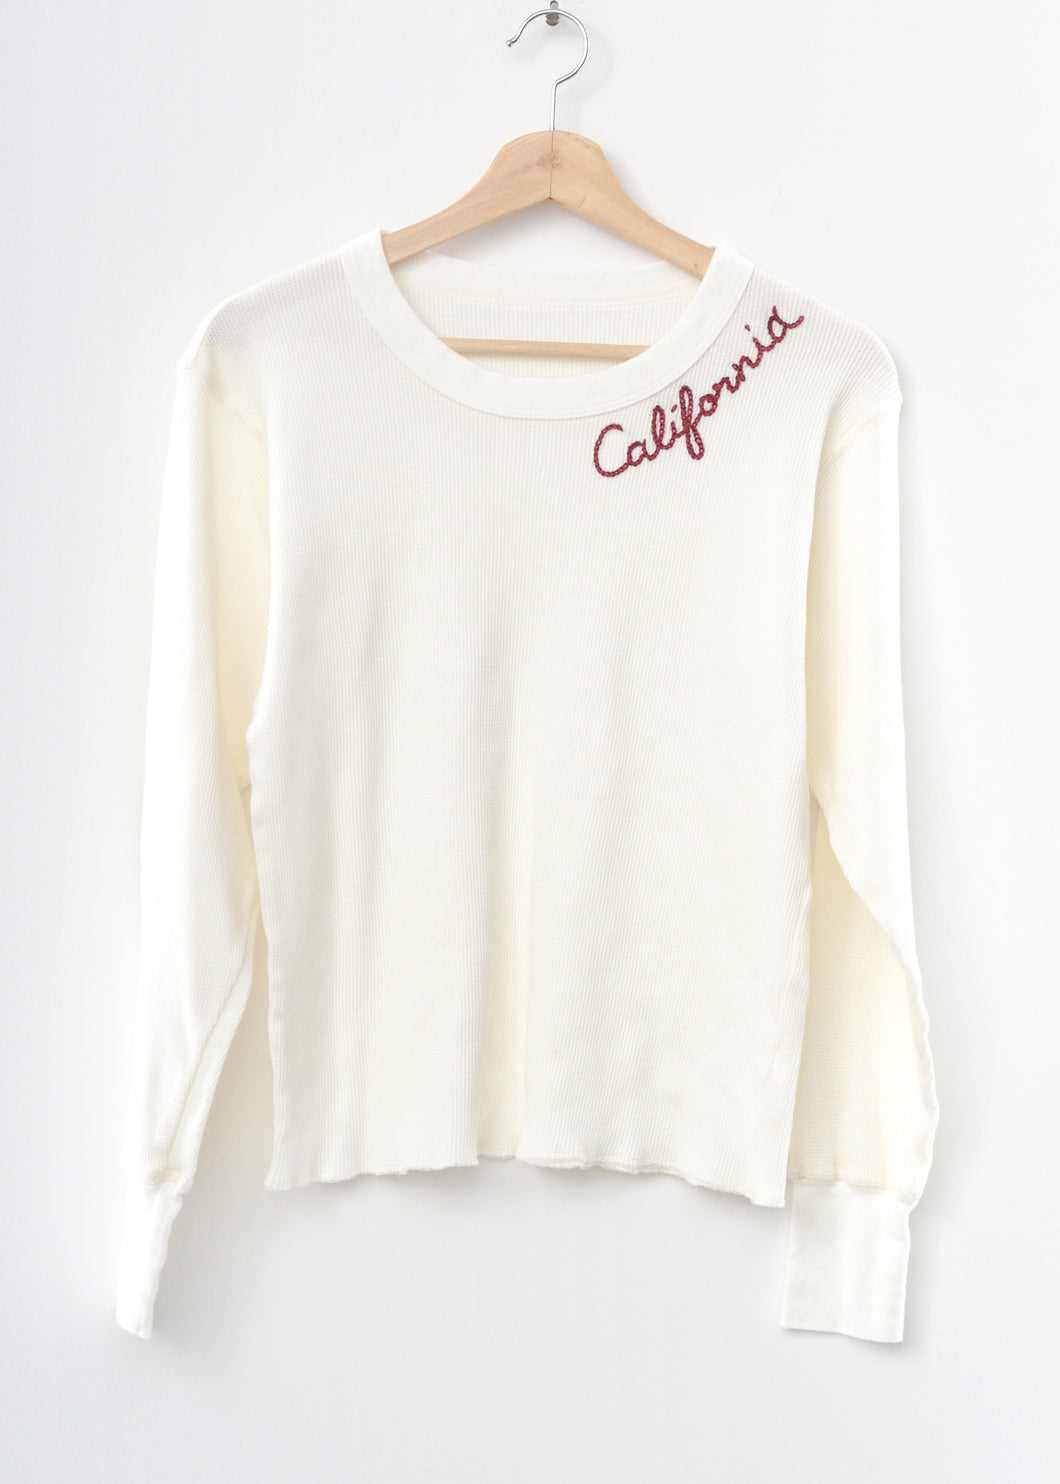 California Thermal Tee L/S-Off White